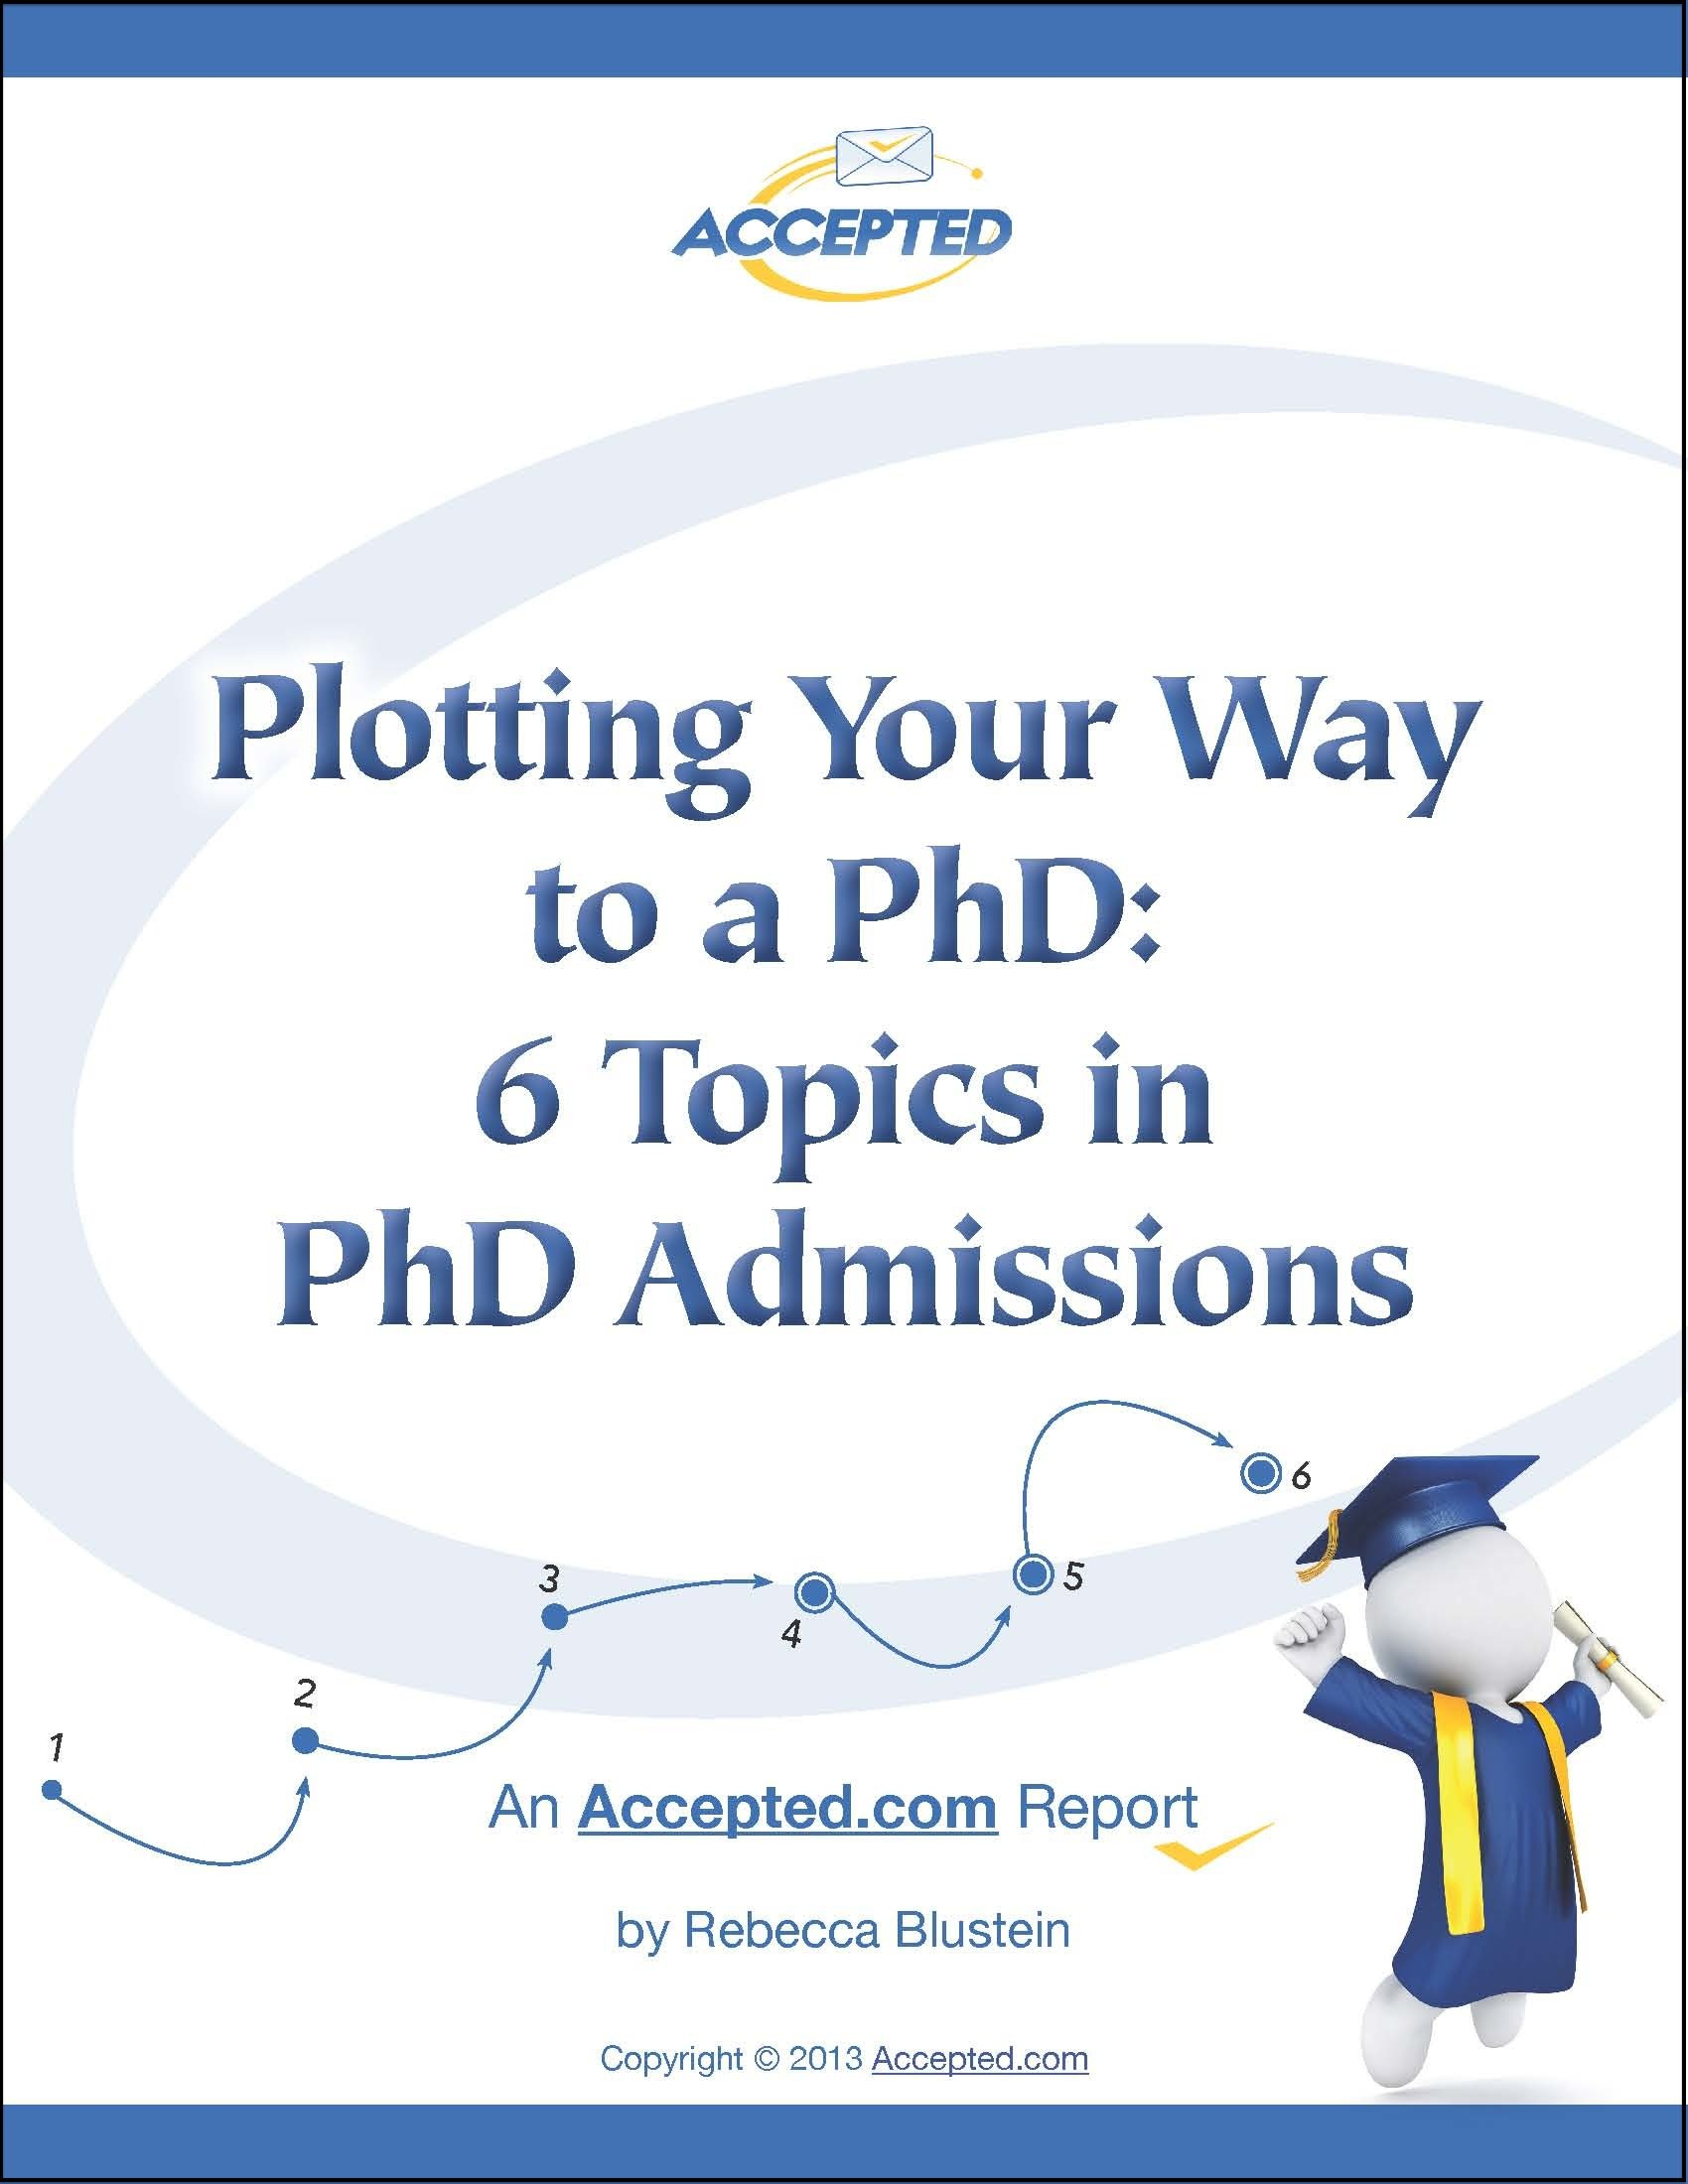 Plotting Your Way to a PhD